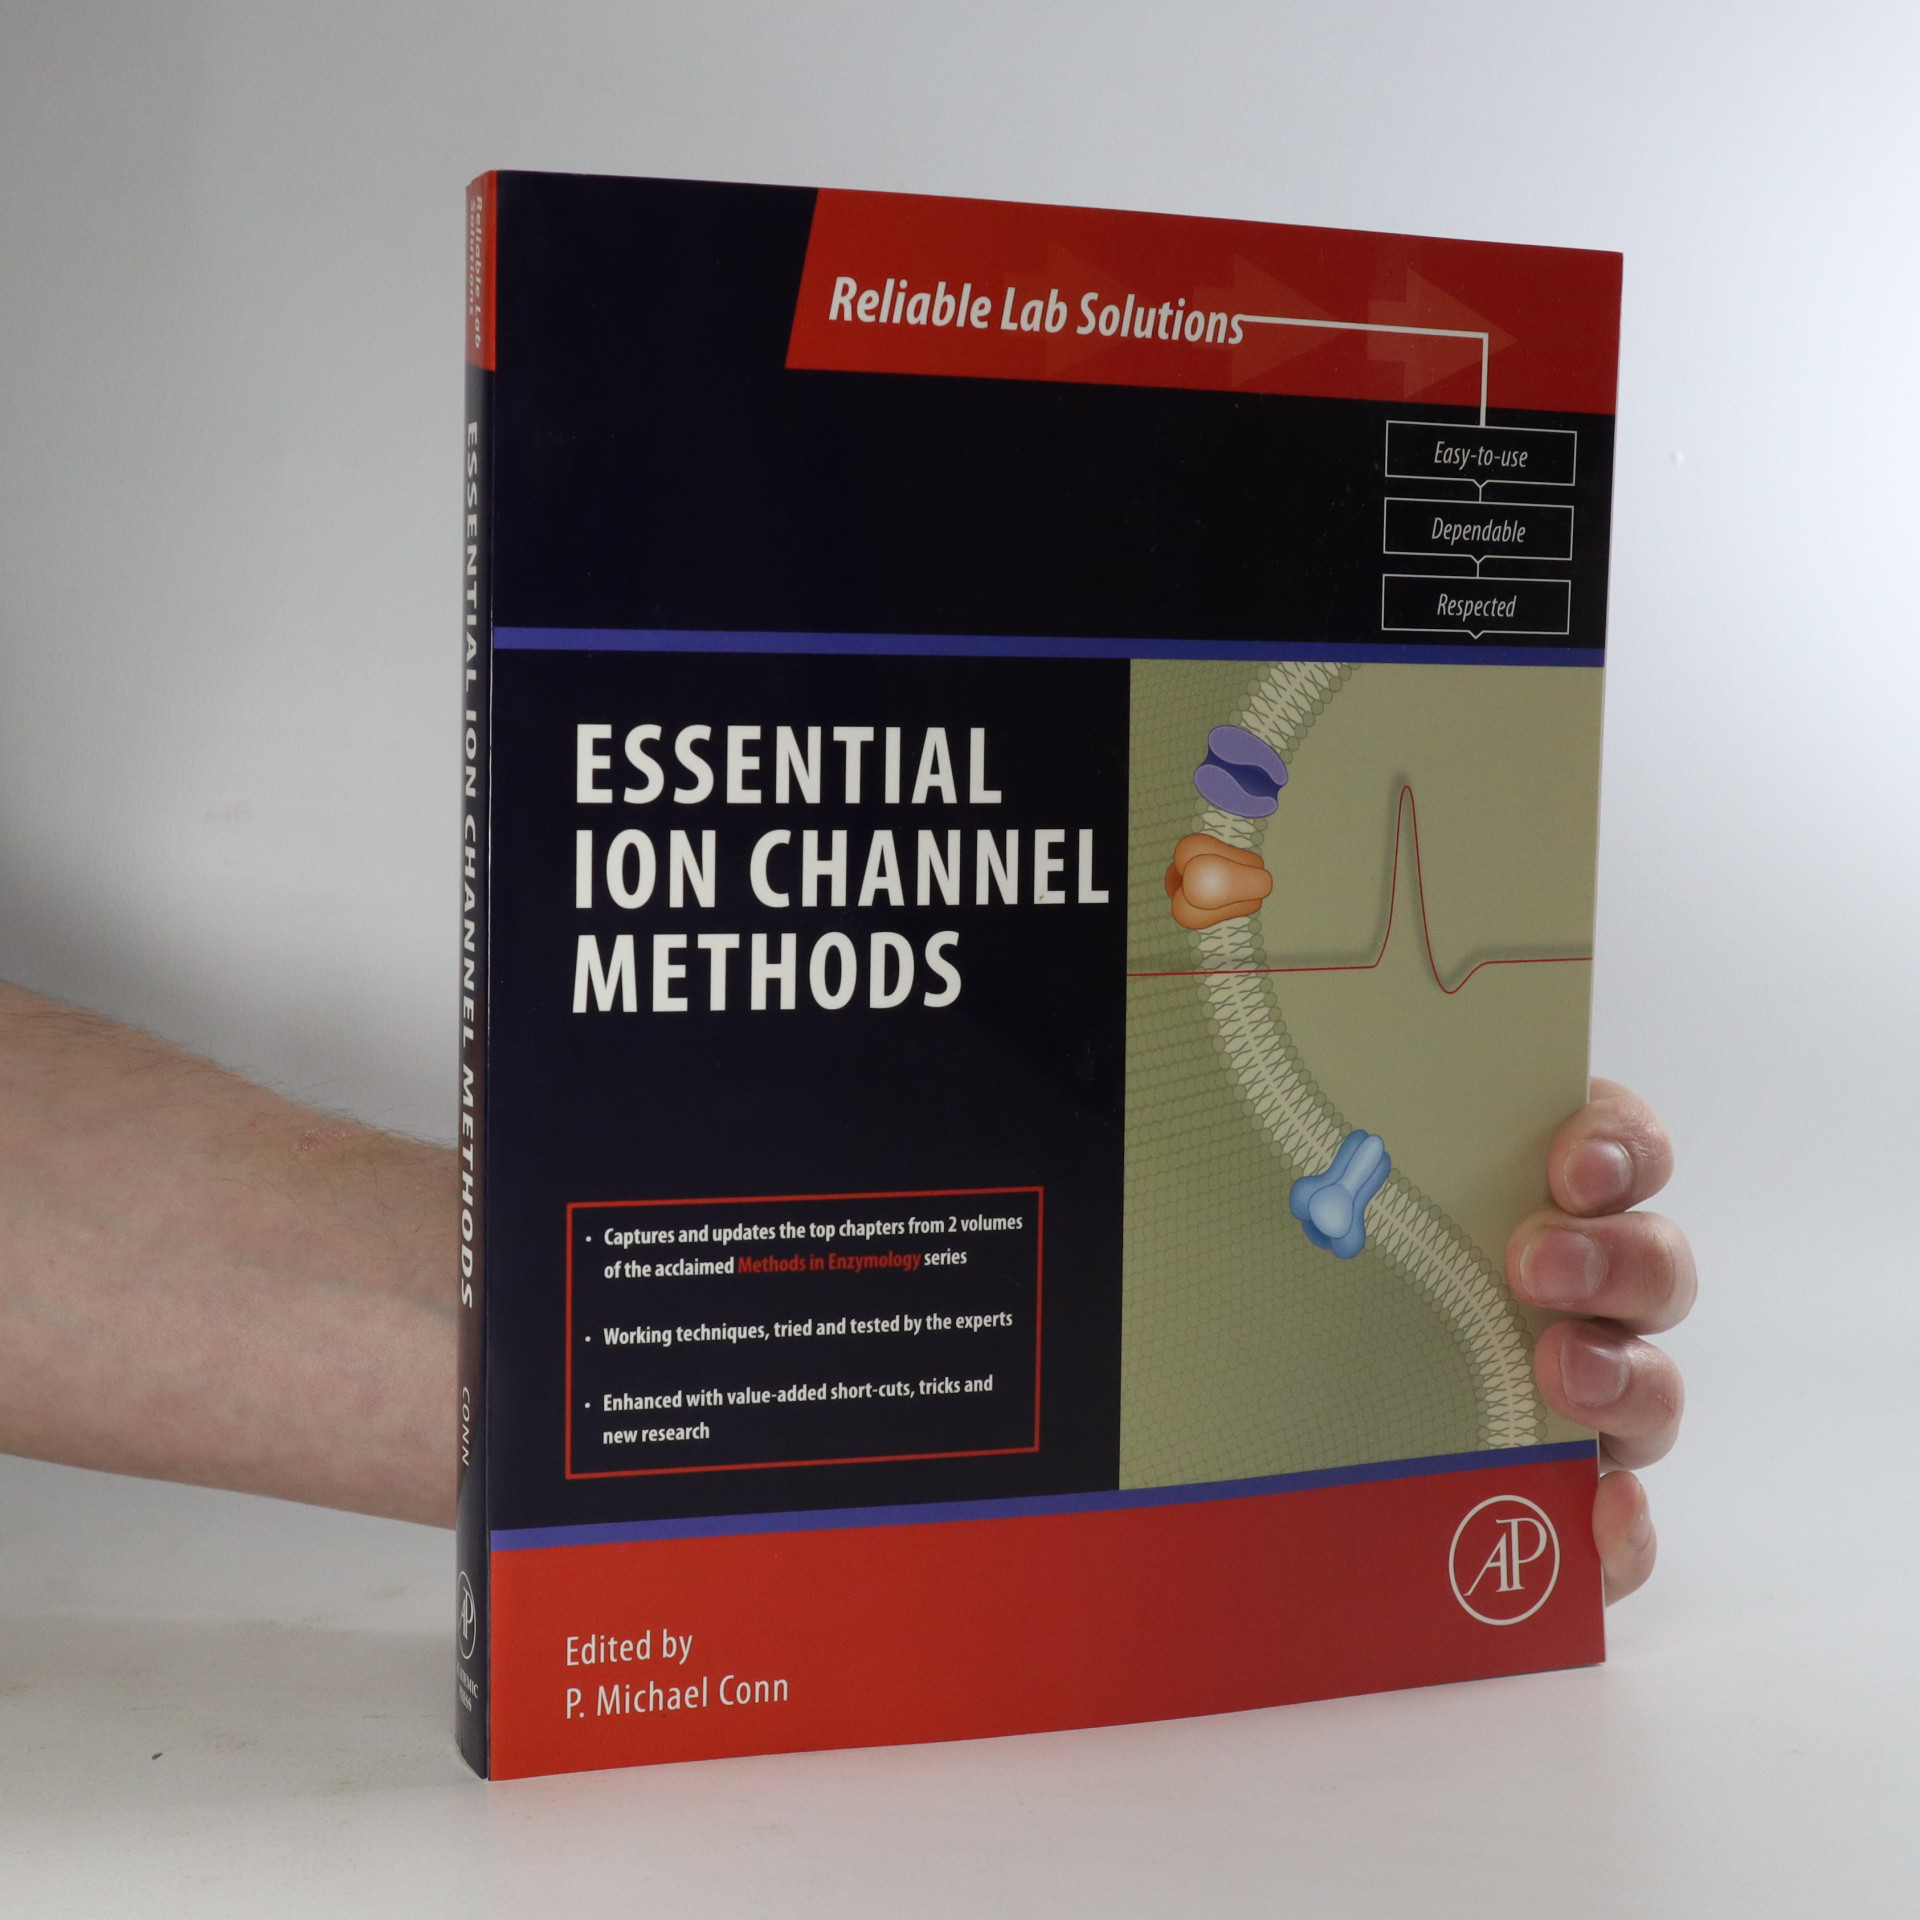 antikvární kniha Essential ion channel methods, neuveden